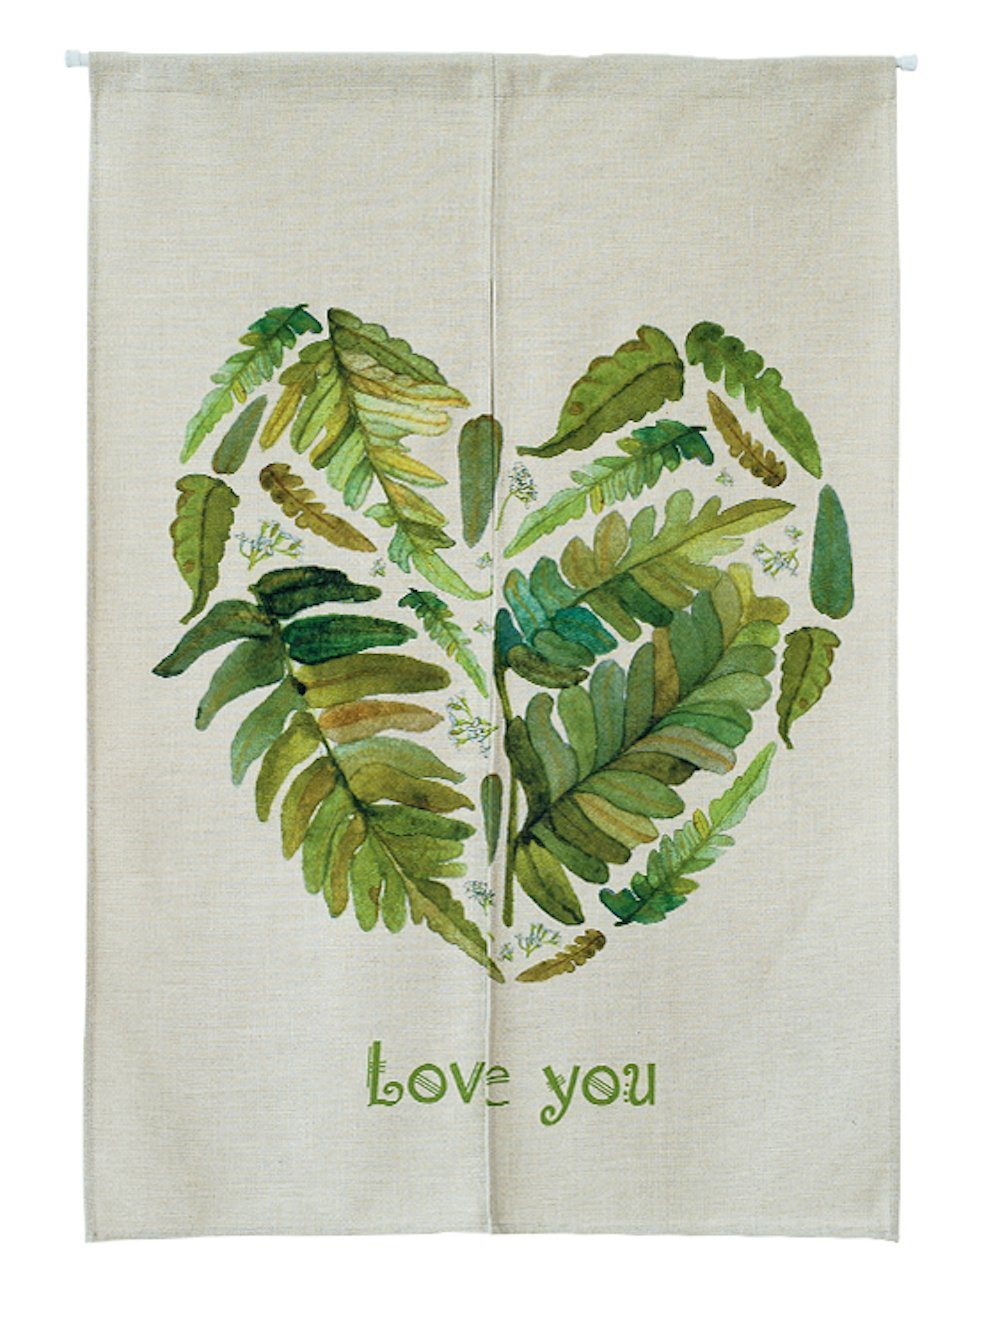 KARUILU home Japanese Noren Doorway Curtain / Tapestry with Watercolor Green 33.5'' Width x 47.2'' Long (Love You Leaf)